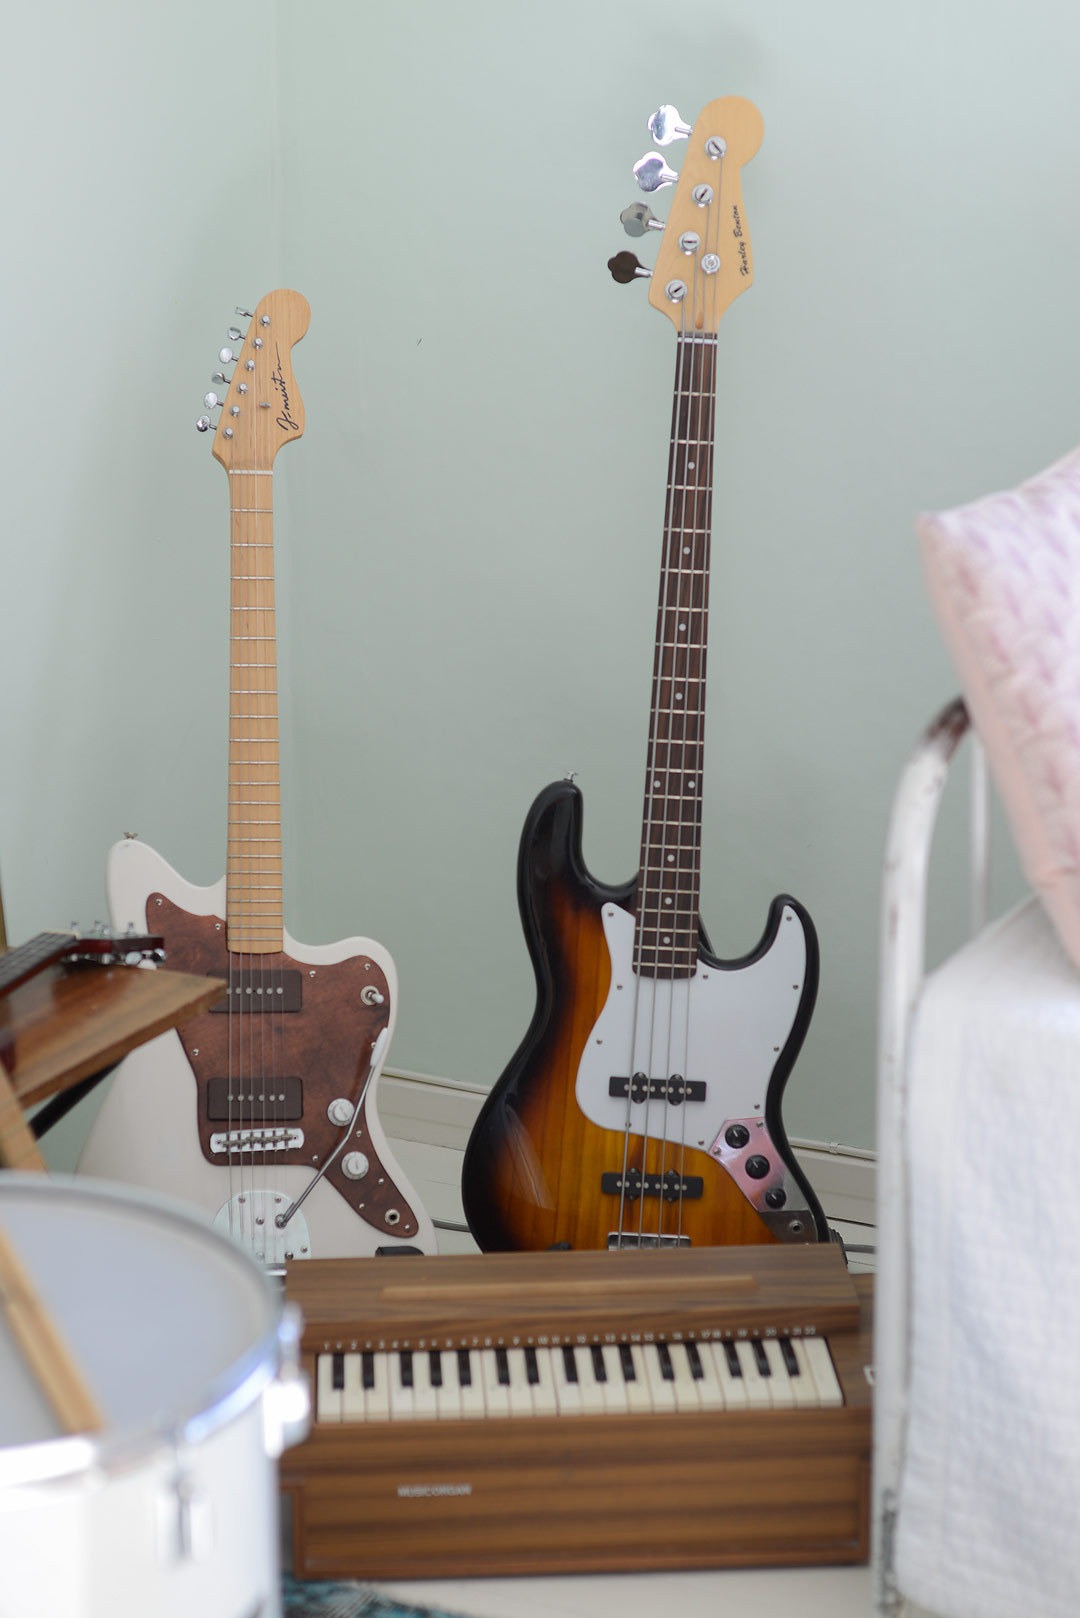 A DIY guitar and a second hand bass guitar